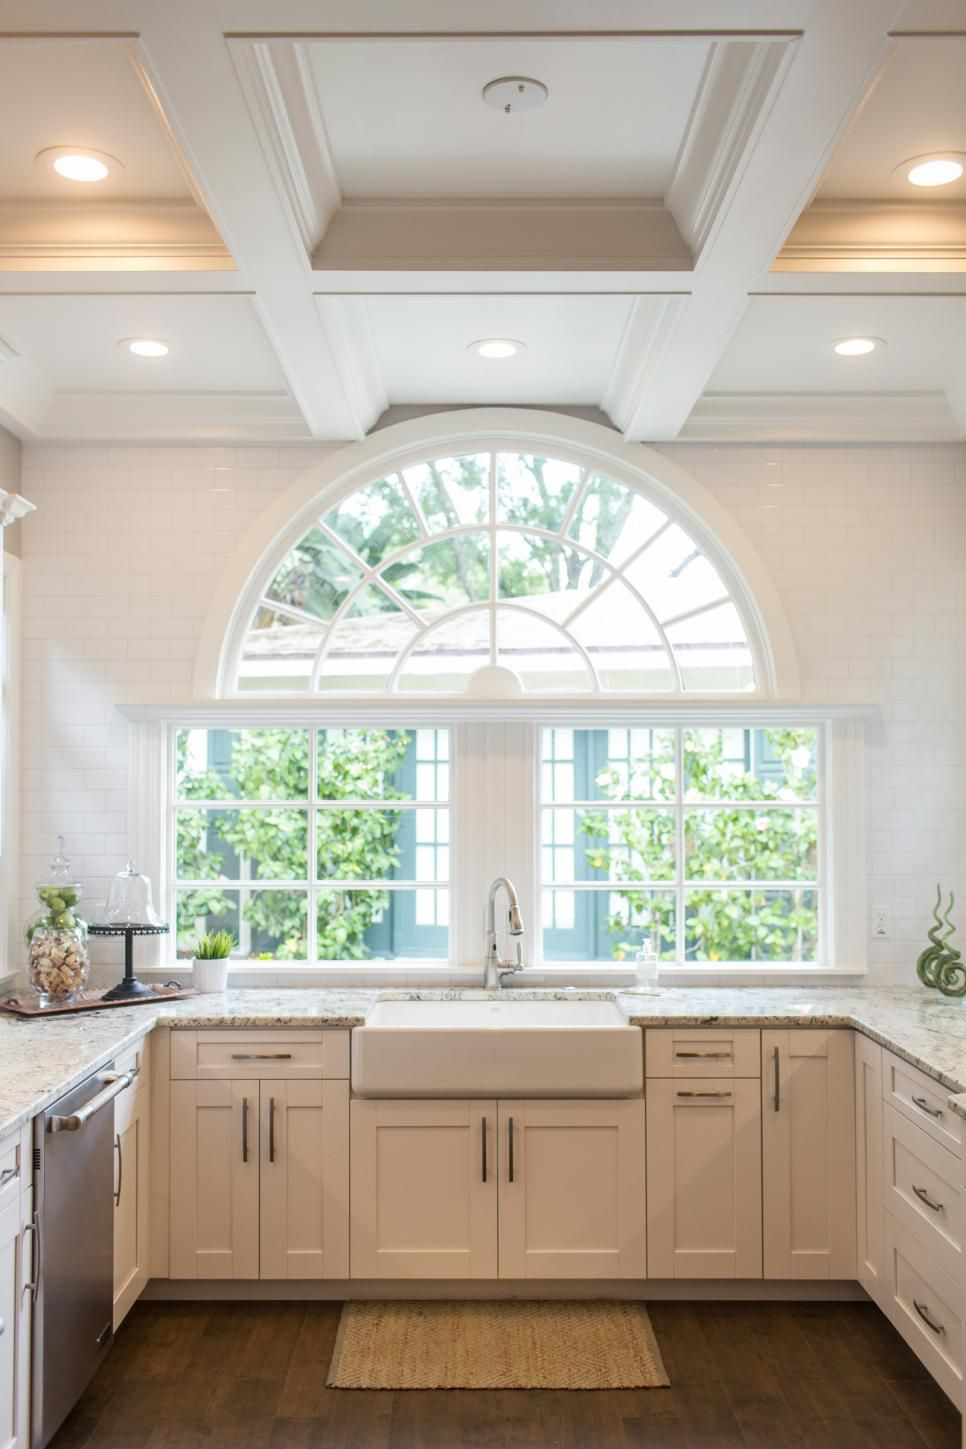 Creative Kitchen Window Treatments Hgtv Pictures Ideas: A Beautiful Half Circle Window Is A Worthy Centerpiece In